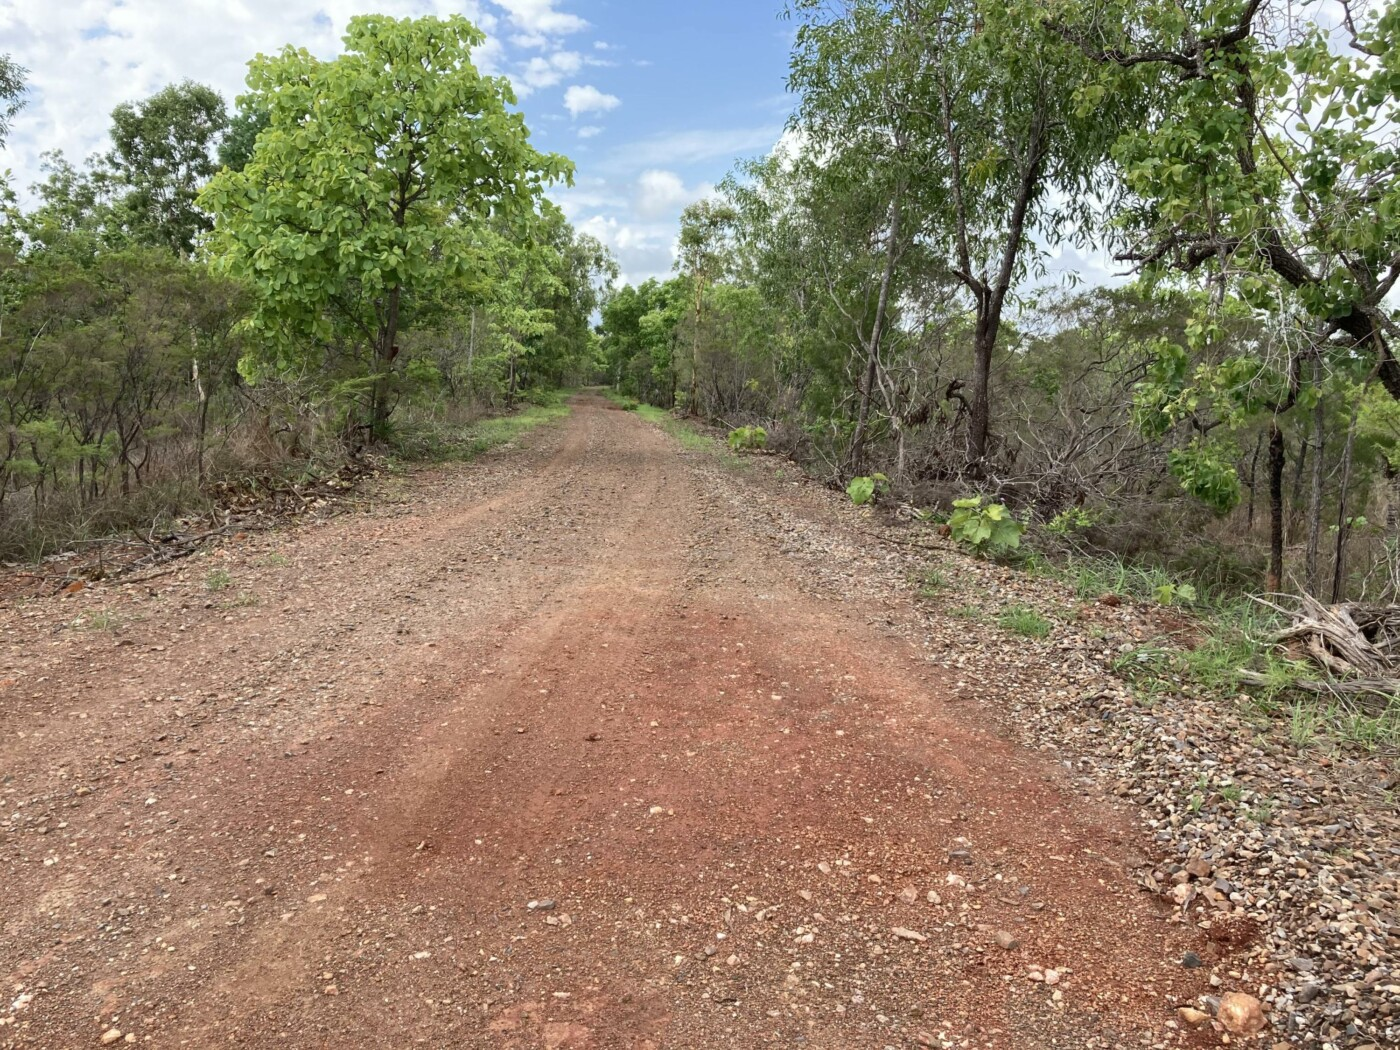 South of Darwin River the rail trail is an access road to rural properties (2020-10)